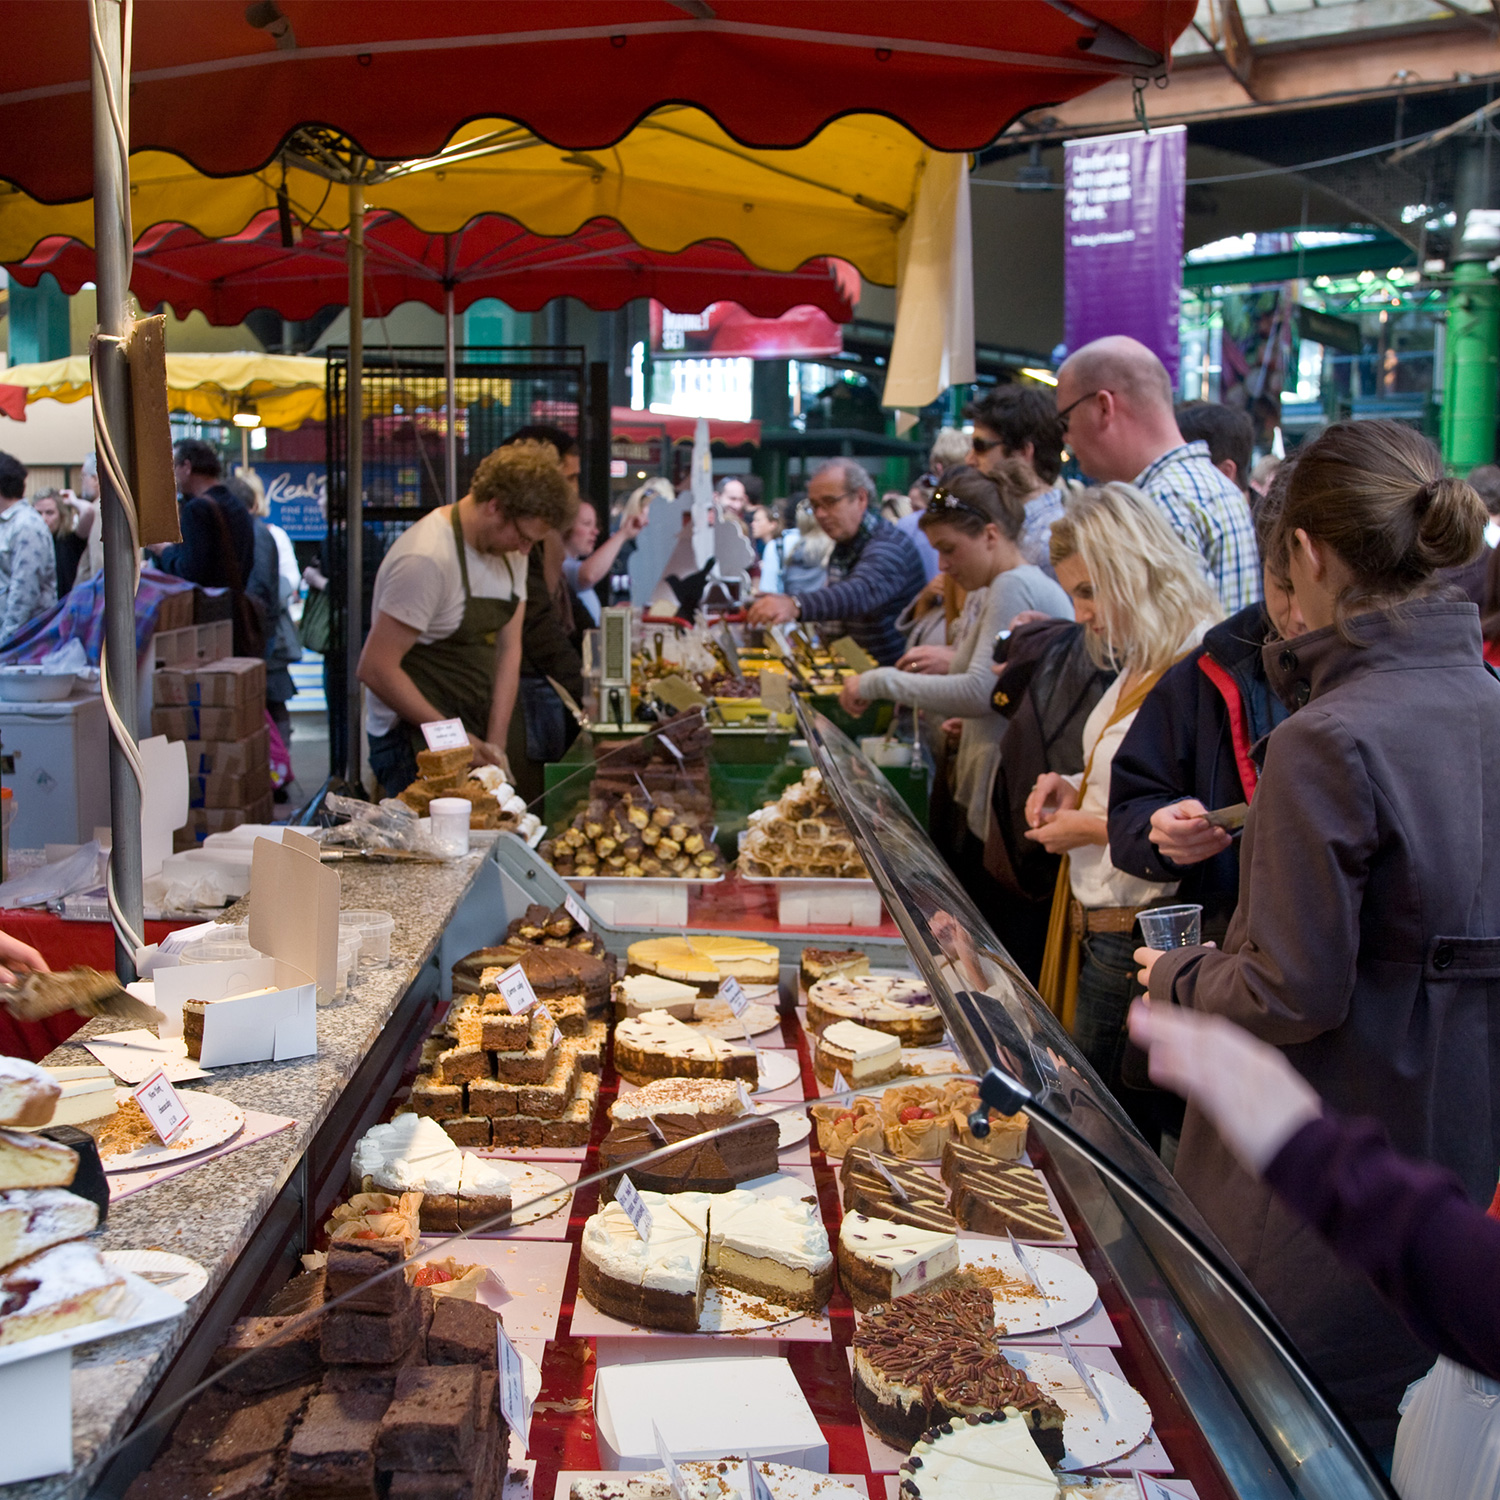 Eat.-Drink.-Repeat-at-these-food-markets--for-Blog